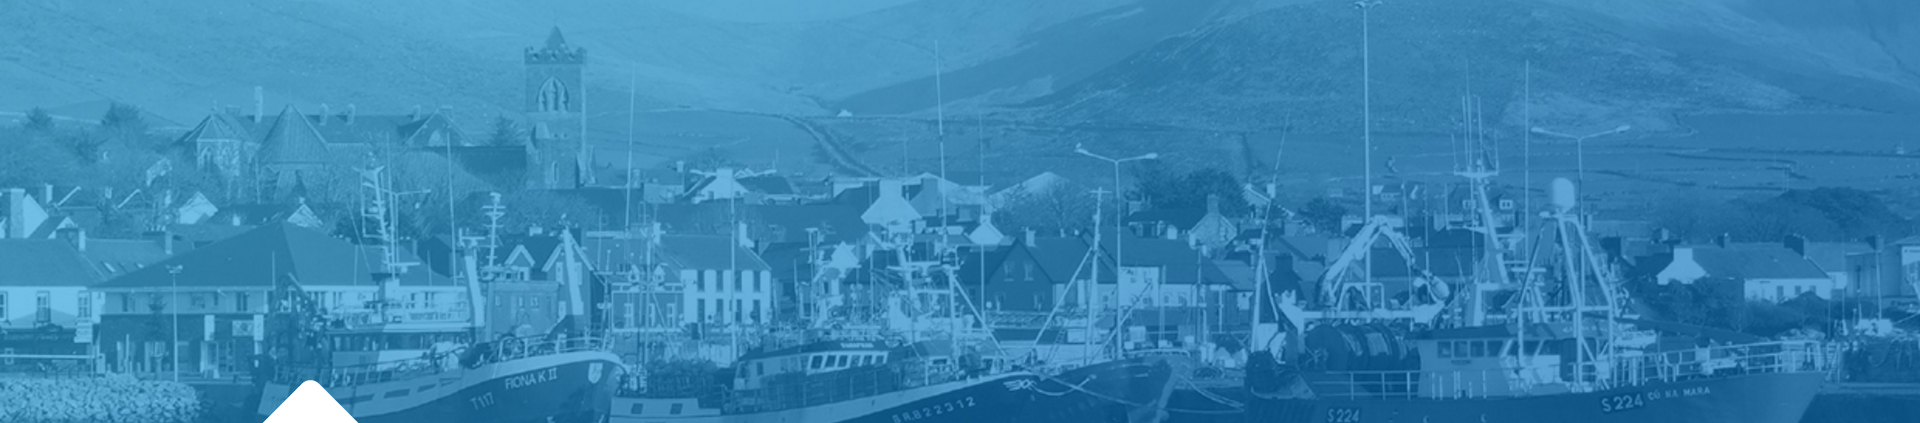 Port of Cork enters Smart Port arena with launch of Net Feasa LPWAN IoT Monitoring & Asset Tracking Solution